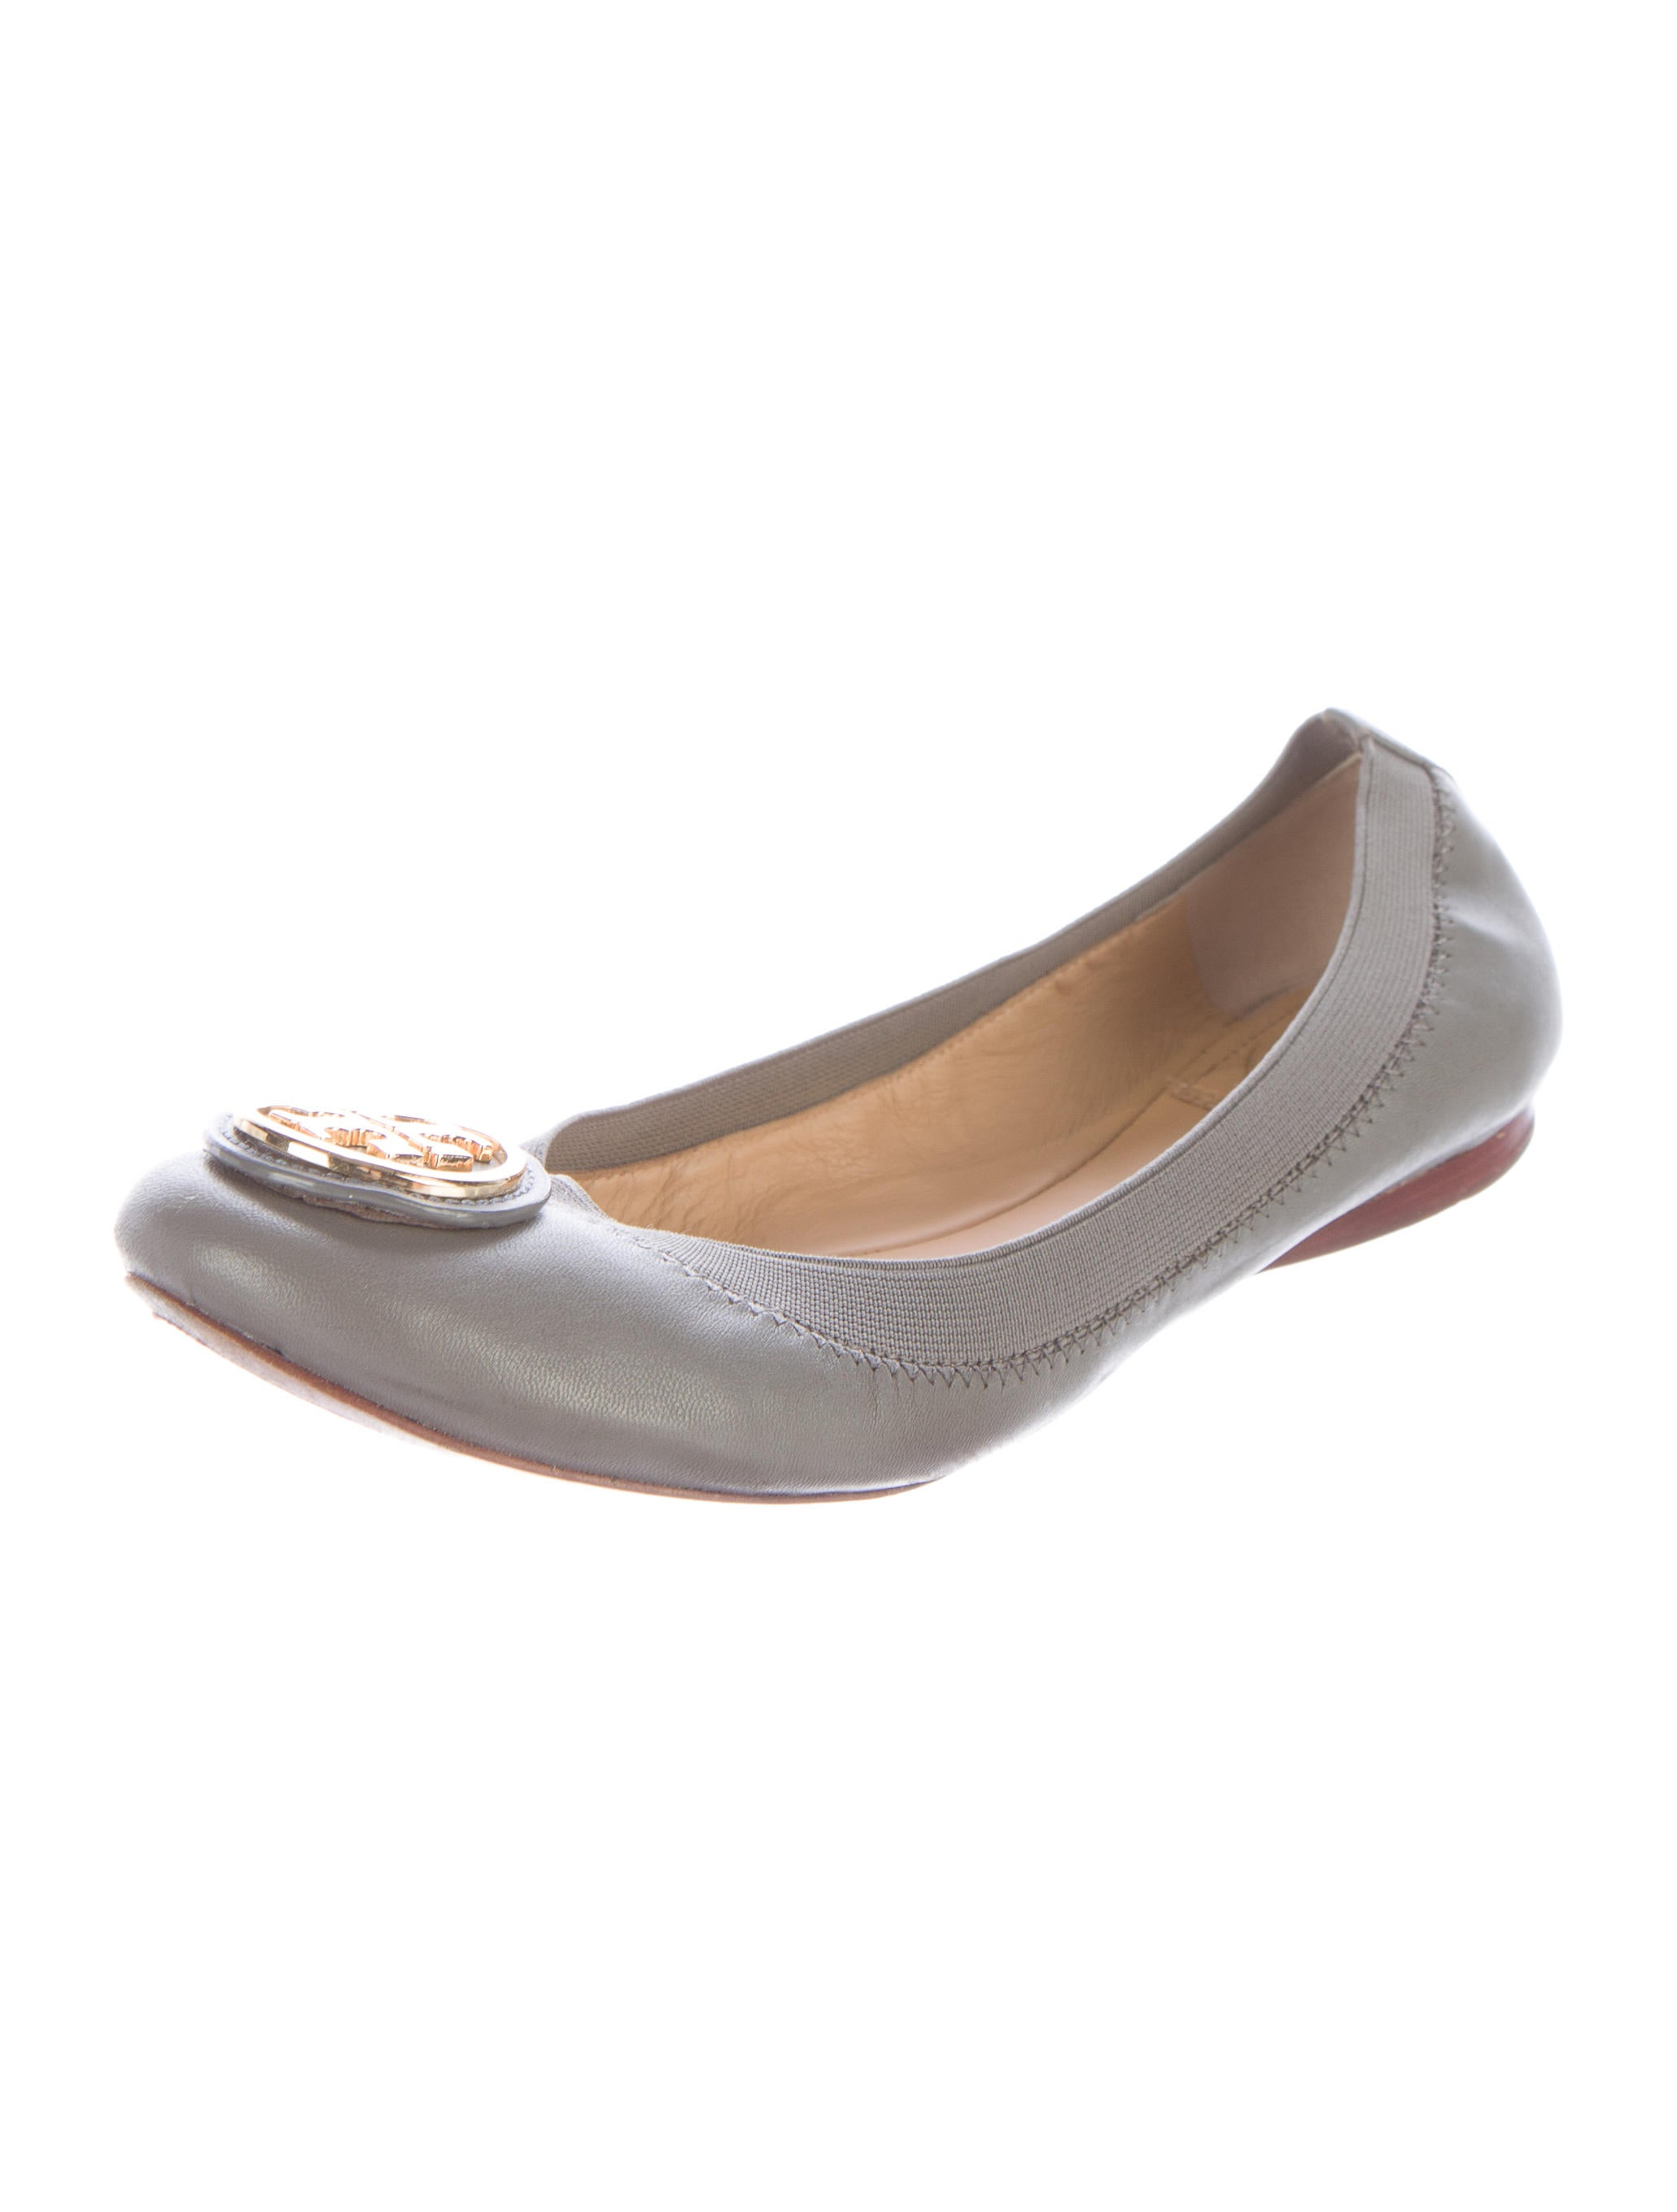 tory burch caroline ballet flats shoes wto78221 the realreal. Black Bedroom Furniture Sets. Home Design Ideas